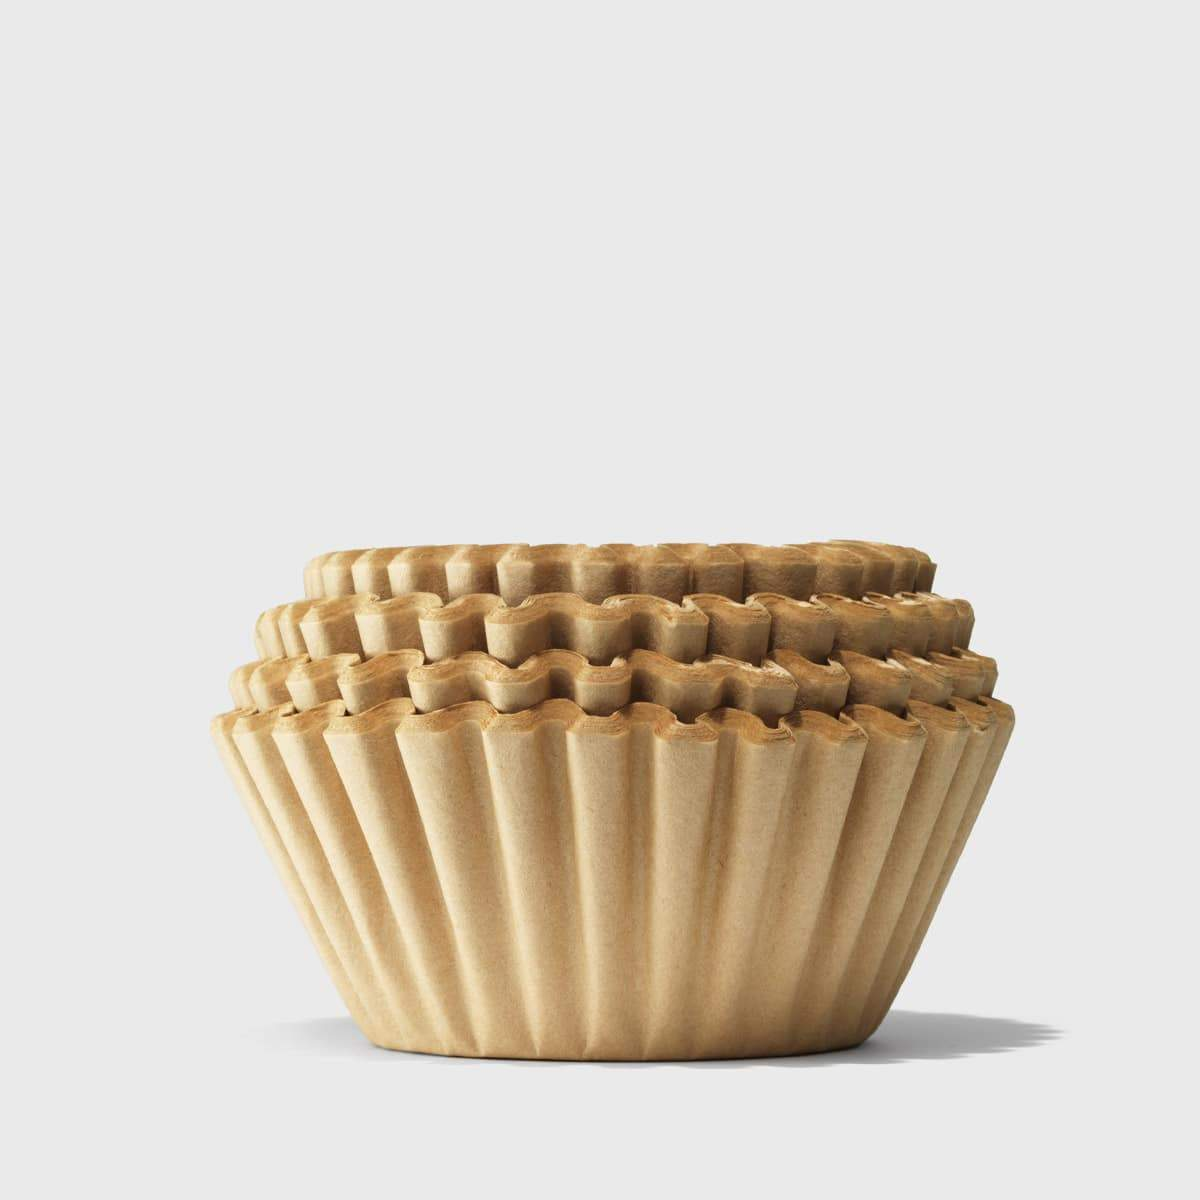 Public Goods Household Coffee Filter Baskets